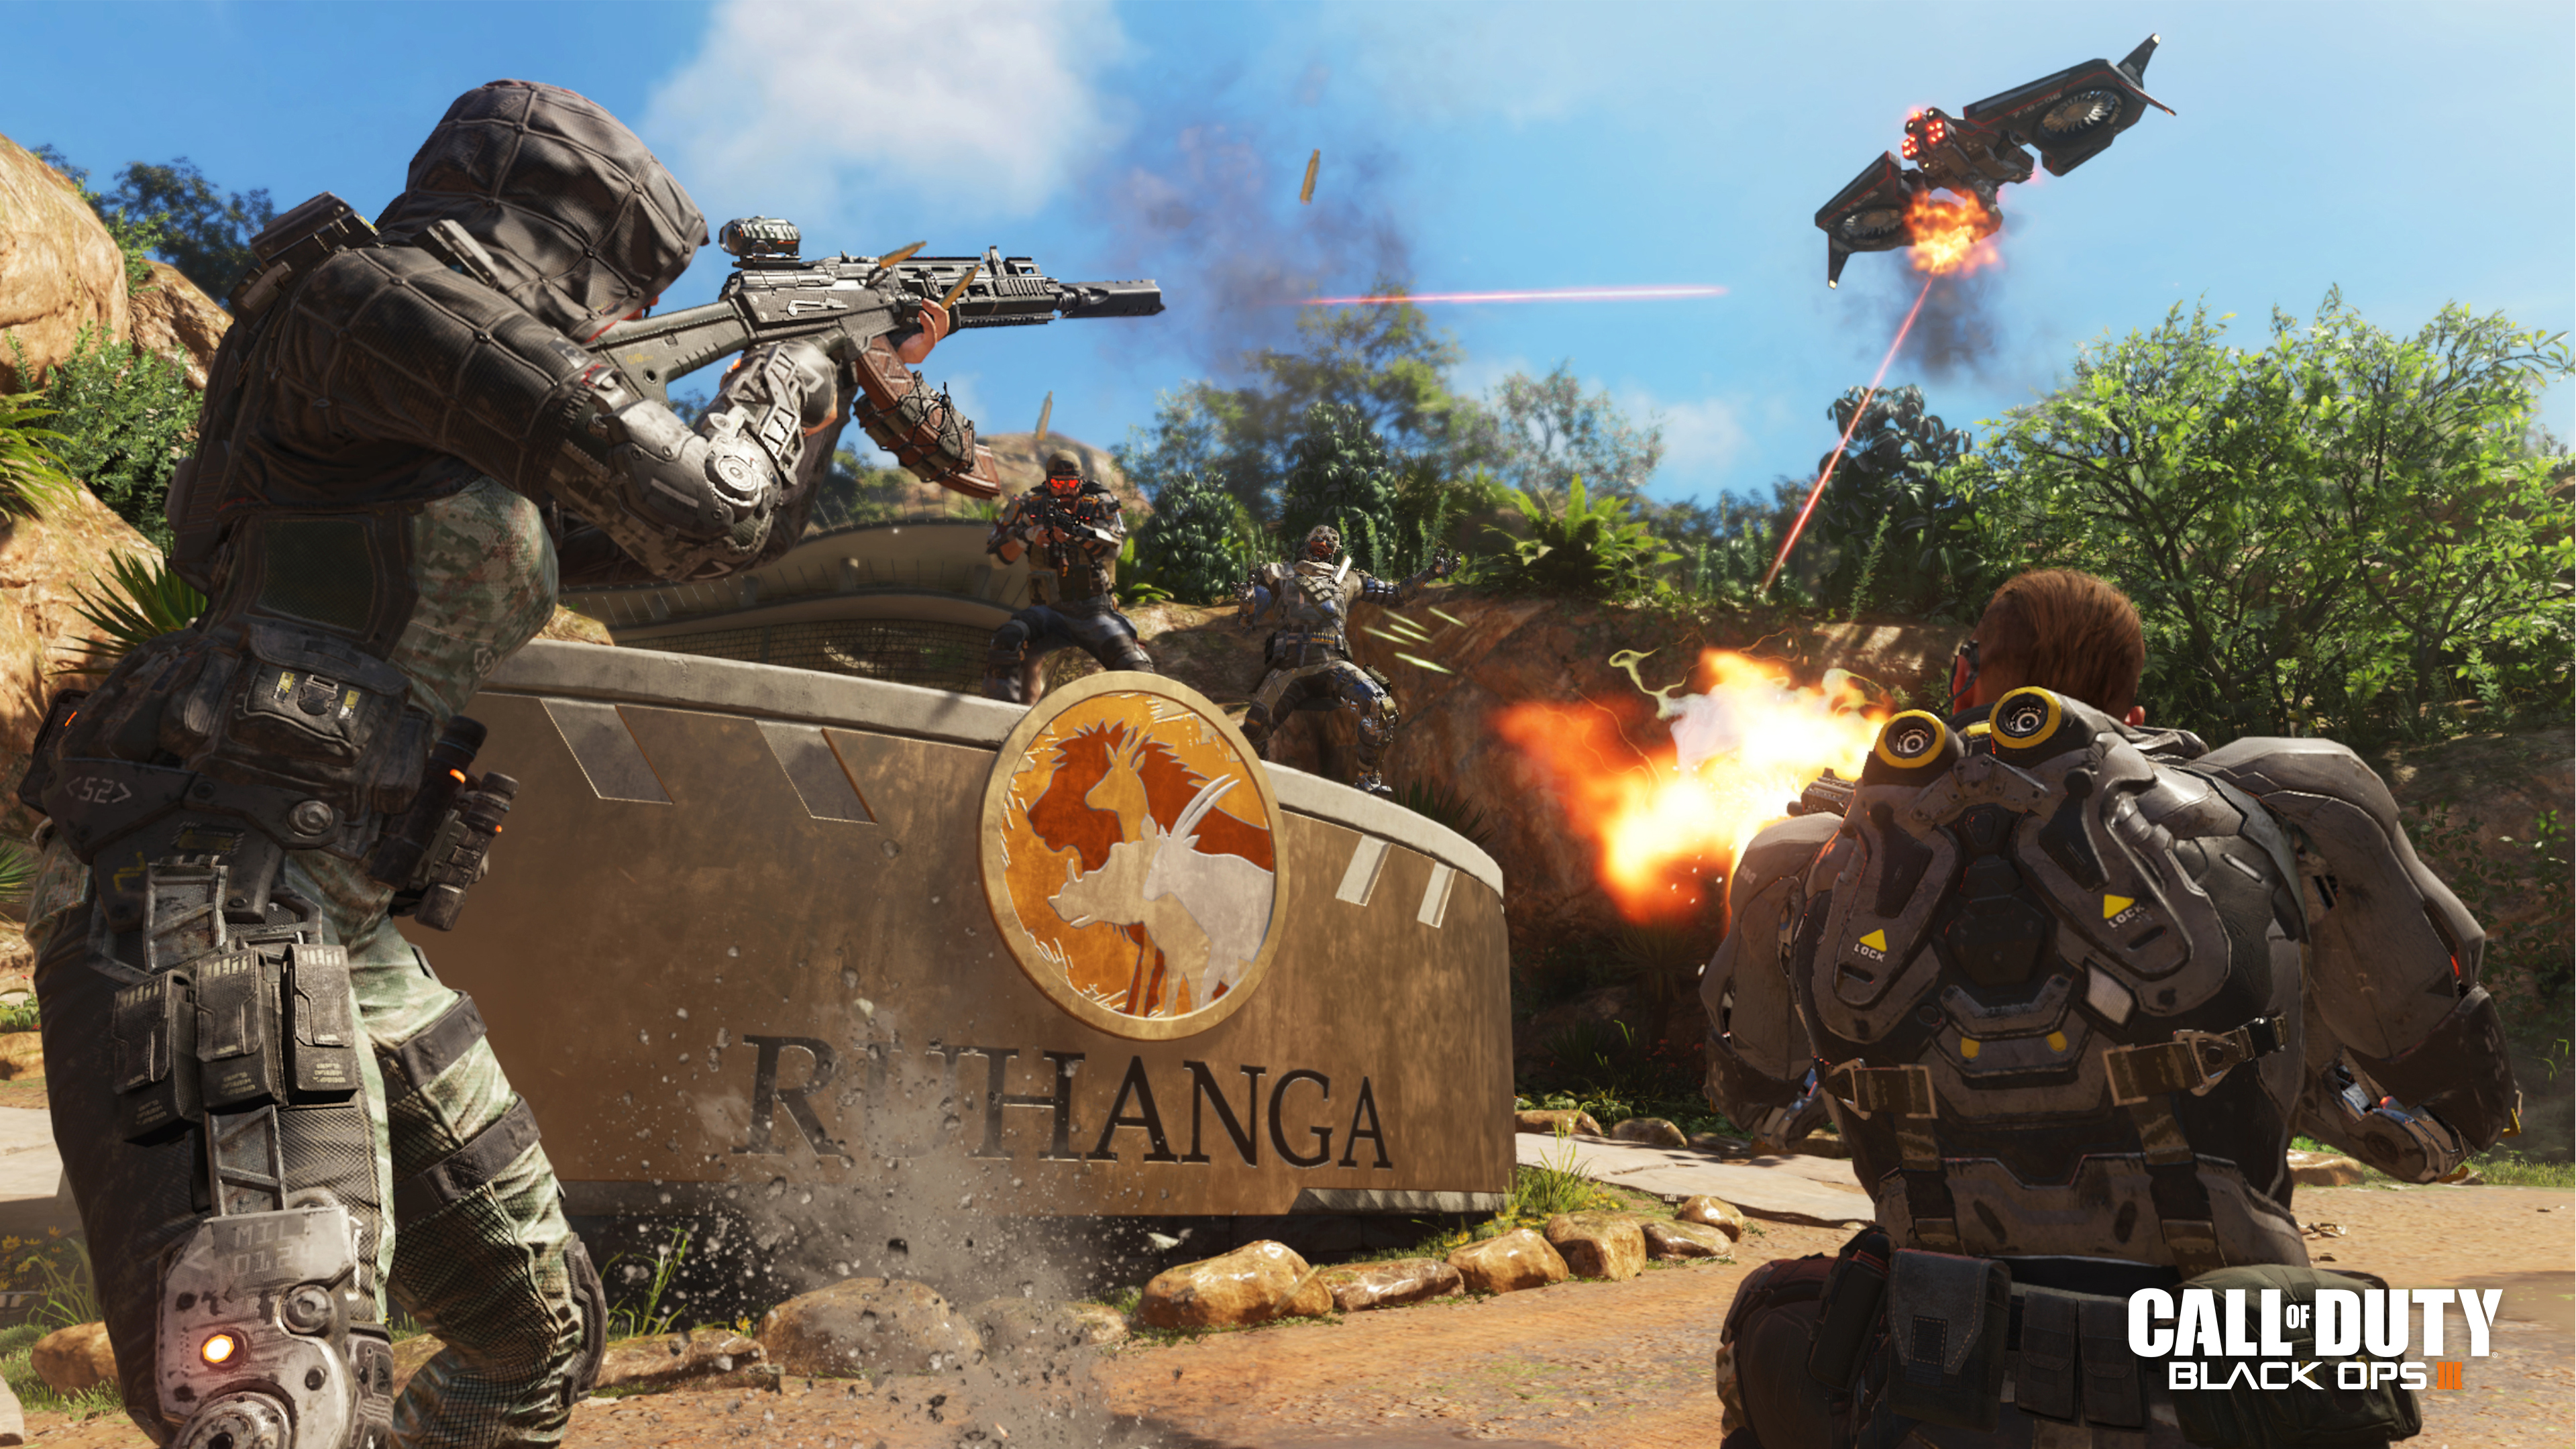 """cead6d0ef97 Kotaku sources say Black Ops 4 to take place in """"near-future setting ..."""